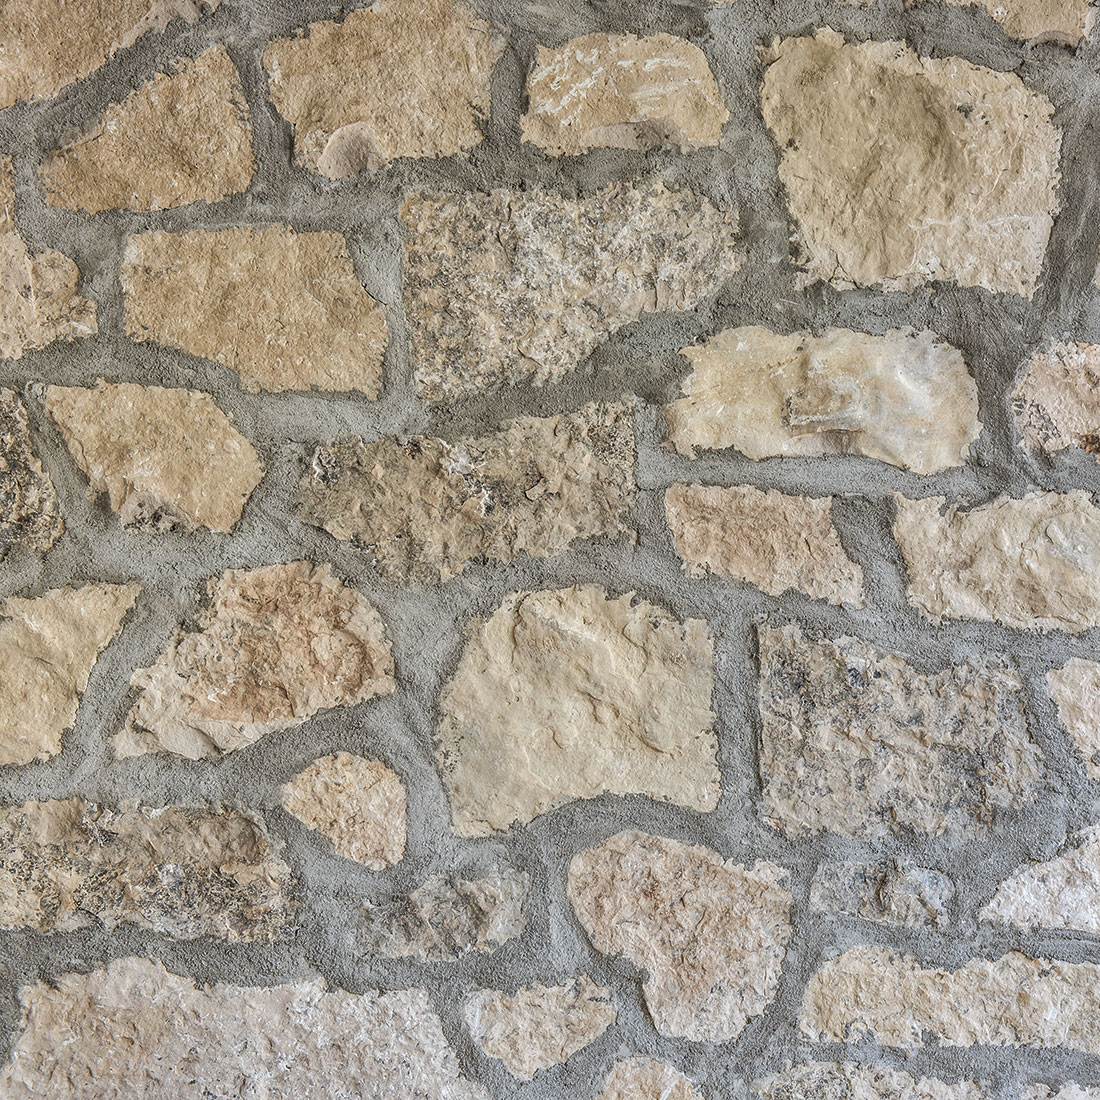 Wiarton Five Point random drywall building stone swatch